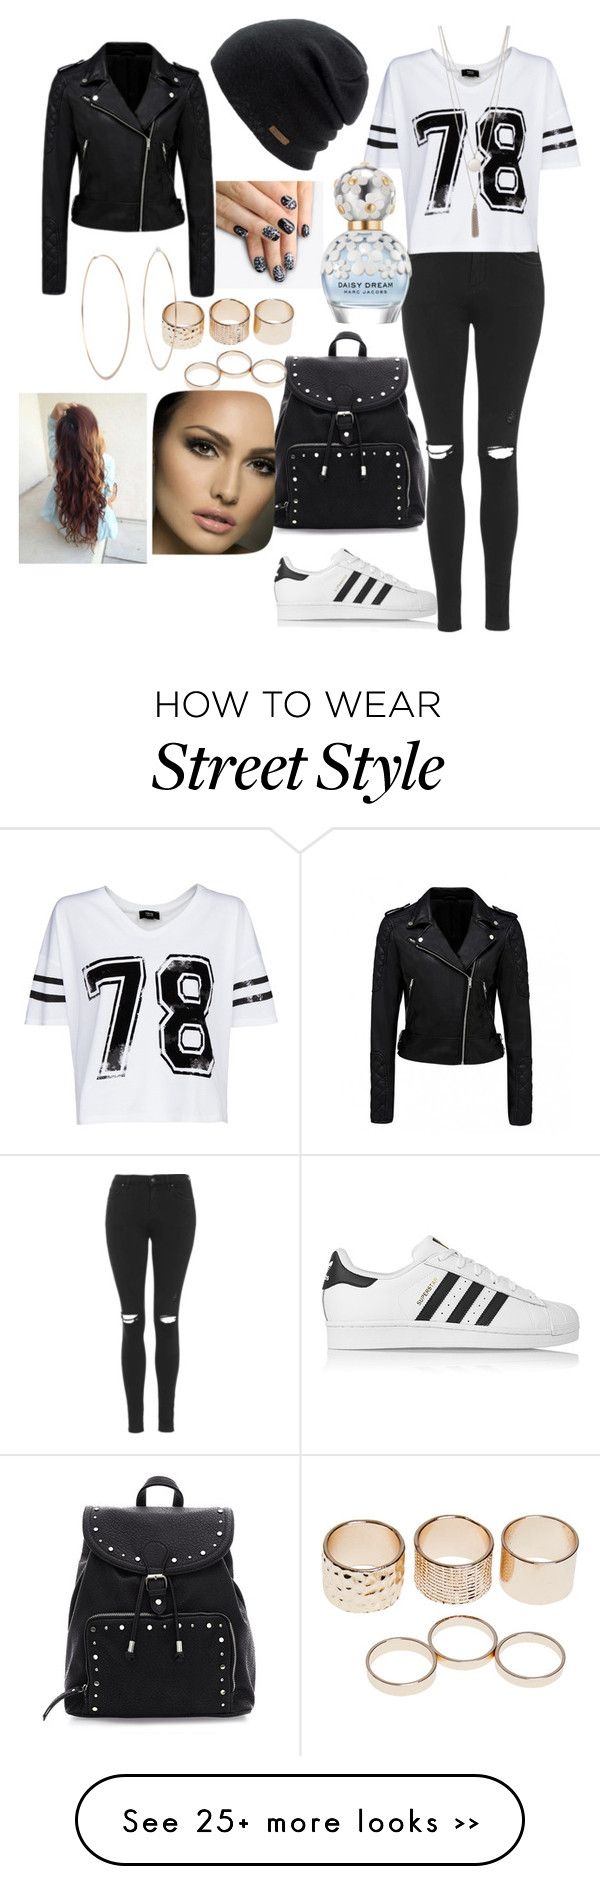 """Street style #5"" by michelle1608 on Polyvore featuring Topshop, MANGO, adidas Originals, Coal, Forever New, Wet Seal, Michael Kors, alfa.K and Marc Jacobs"